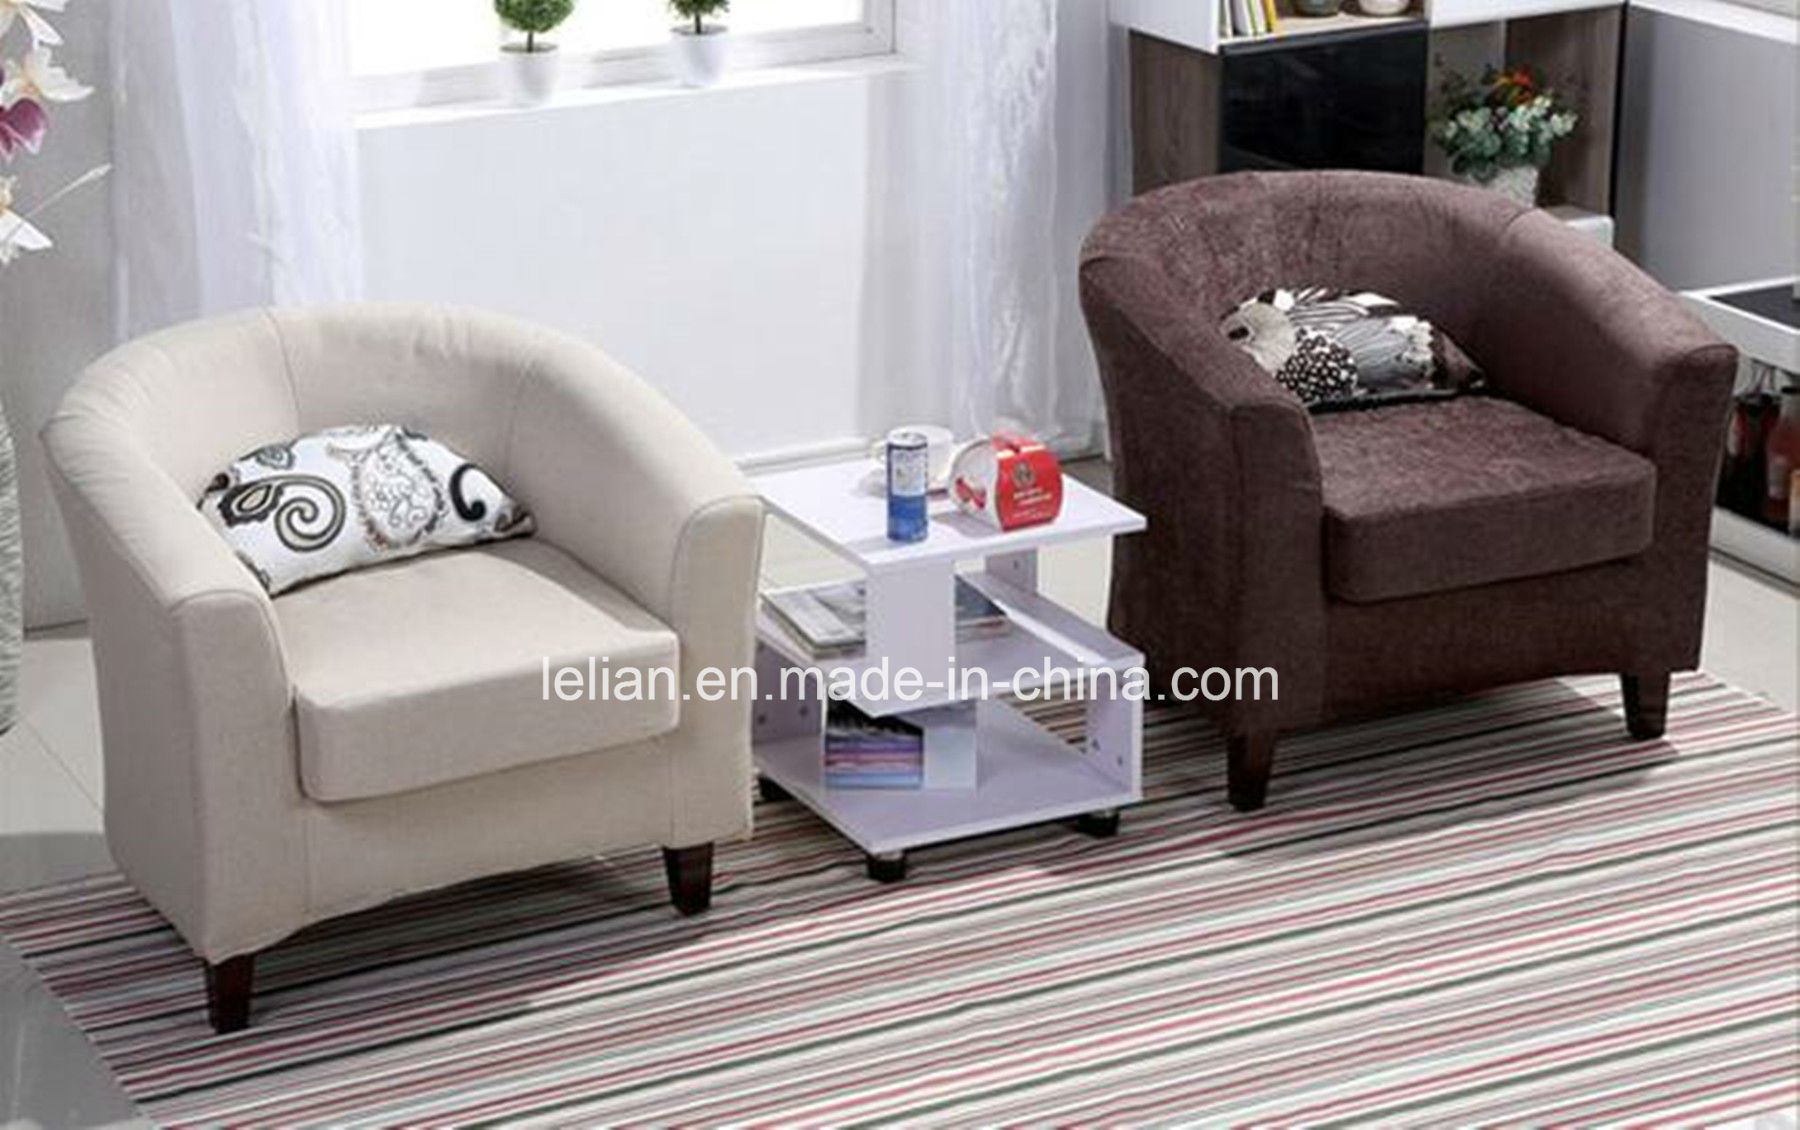 Comfortable Chairs For Bedrooms Bedroom Sofa Chair Awesome Home